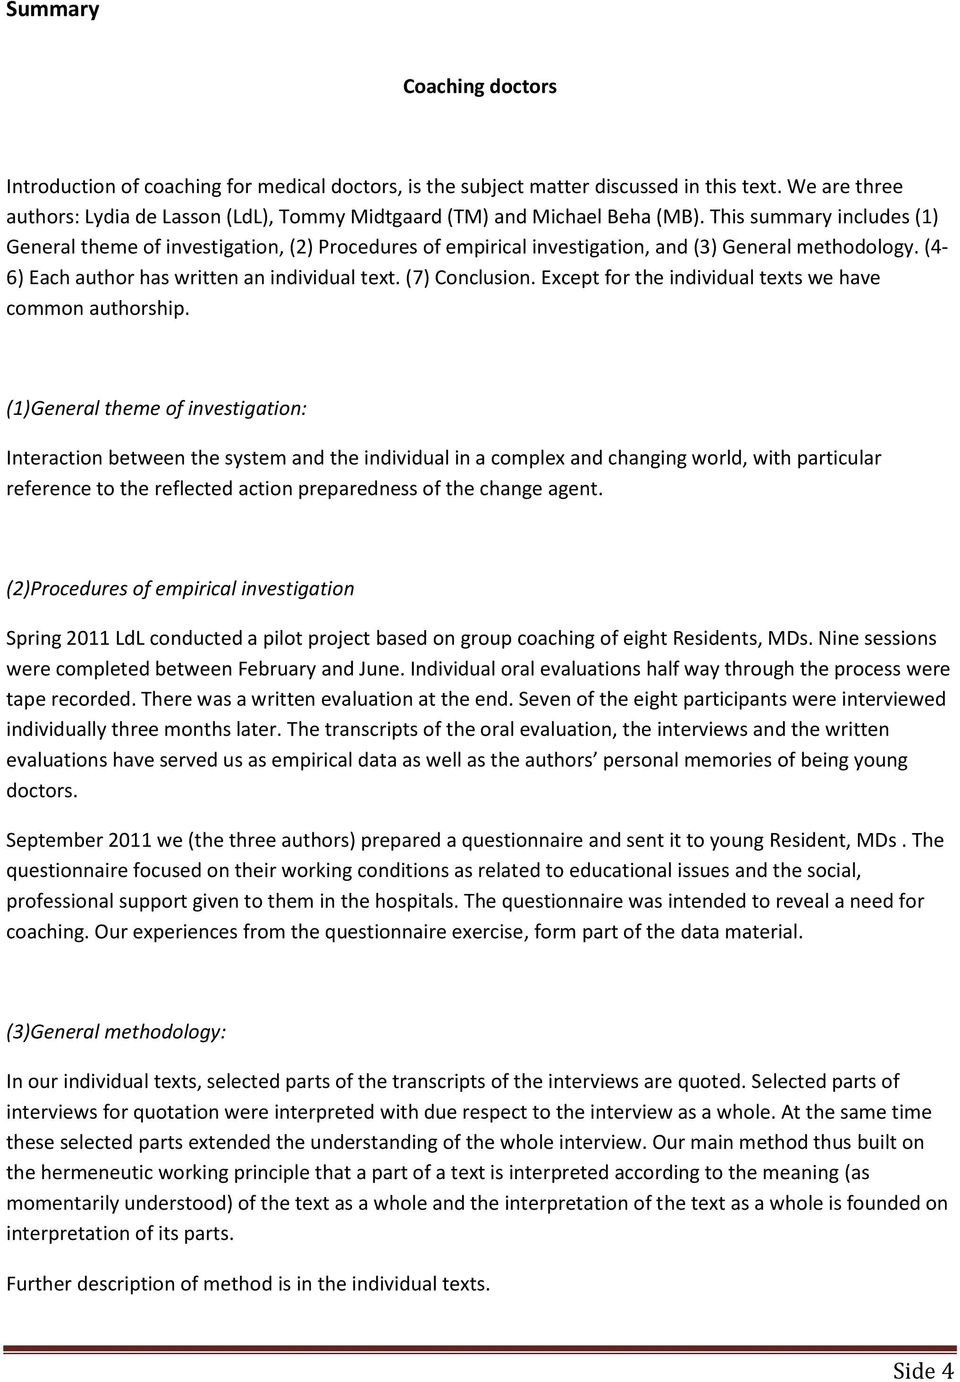 This summary includes (1) General theme of investigation, (2) Procedures of empirical investigation, and (3) General methodology. (4-6) Each author has written an individual text. (7) Conclusion.